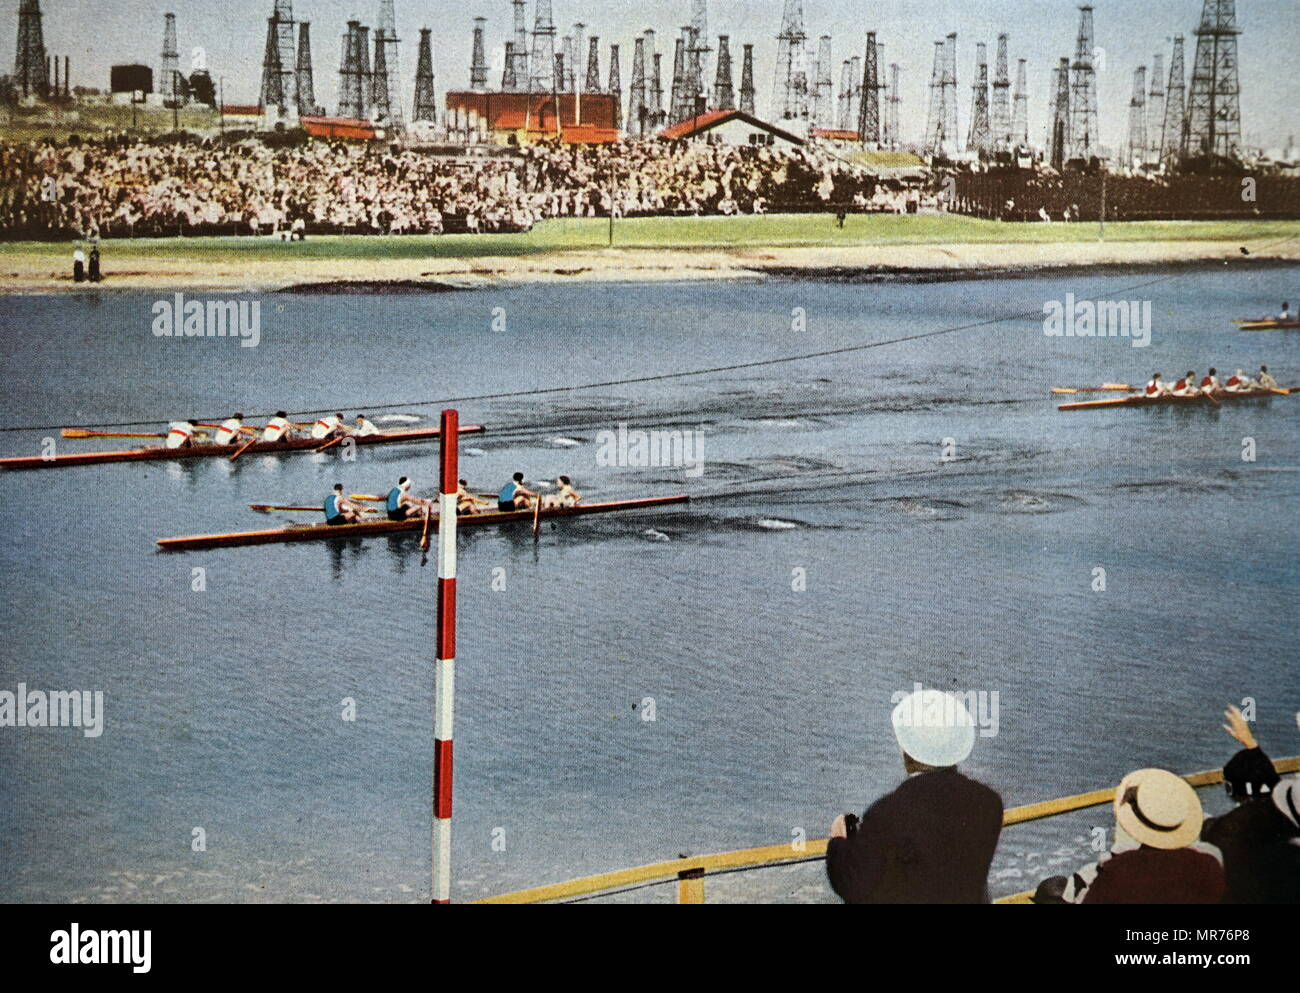 Photograph of the Coxed fours rowing at the 1932 Olympic games. The photo shows Germany win Gold over Italy who took silver. - Stock Image